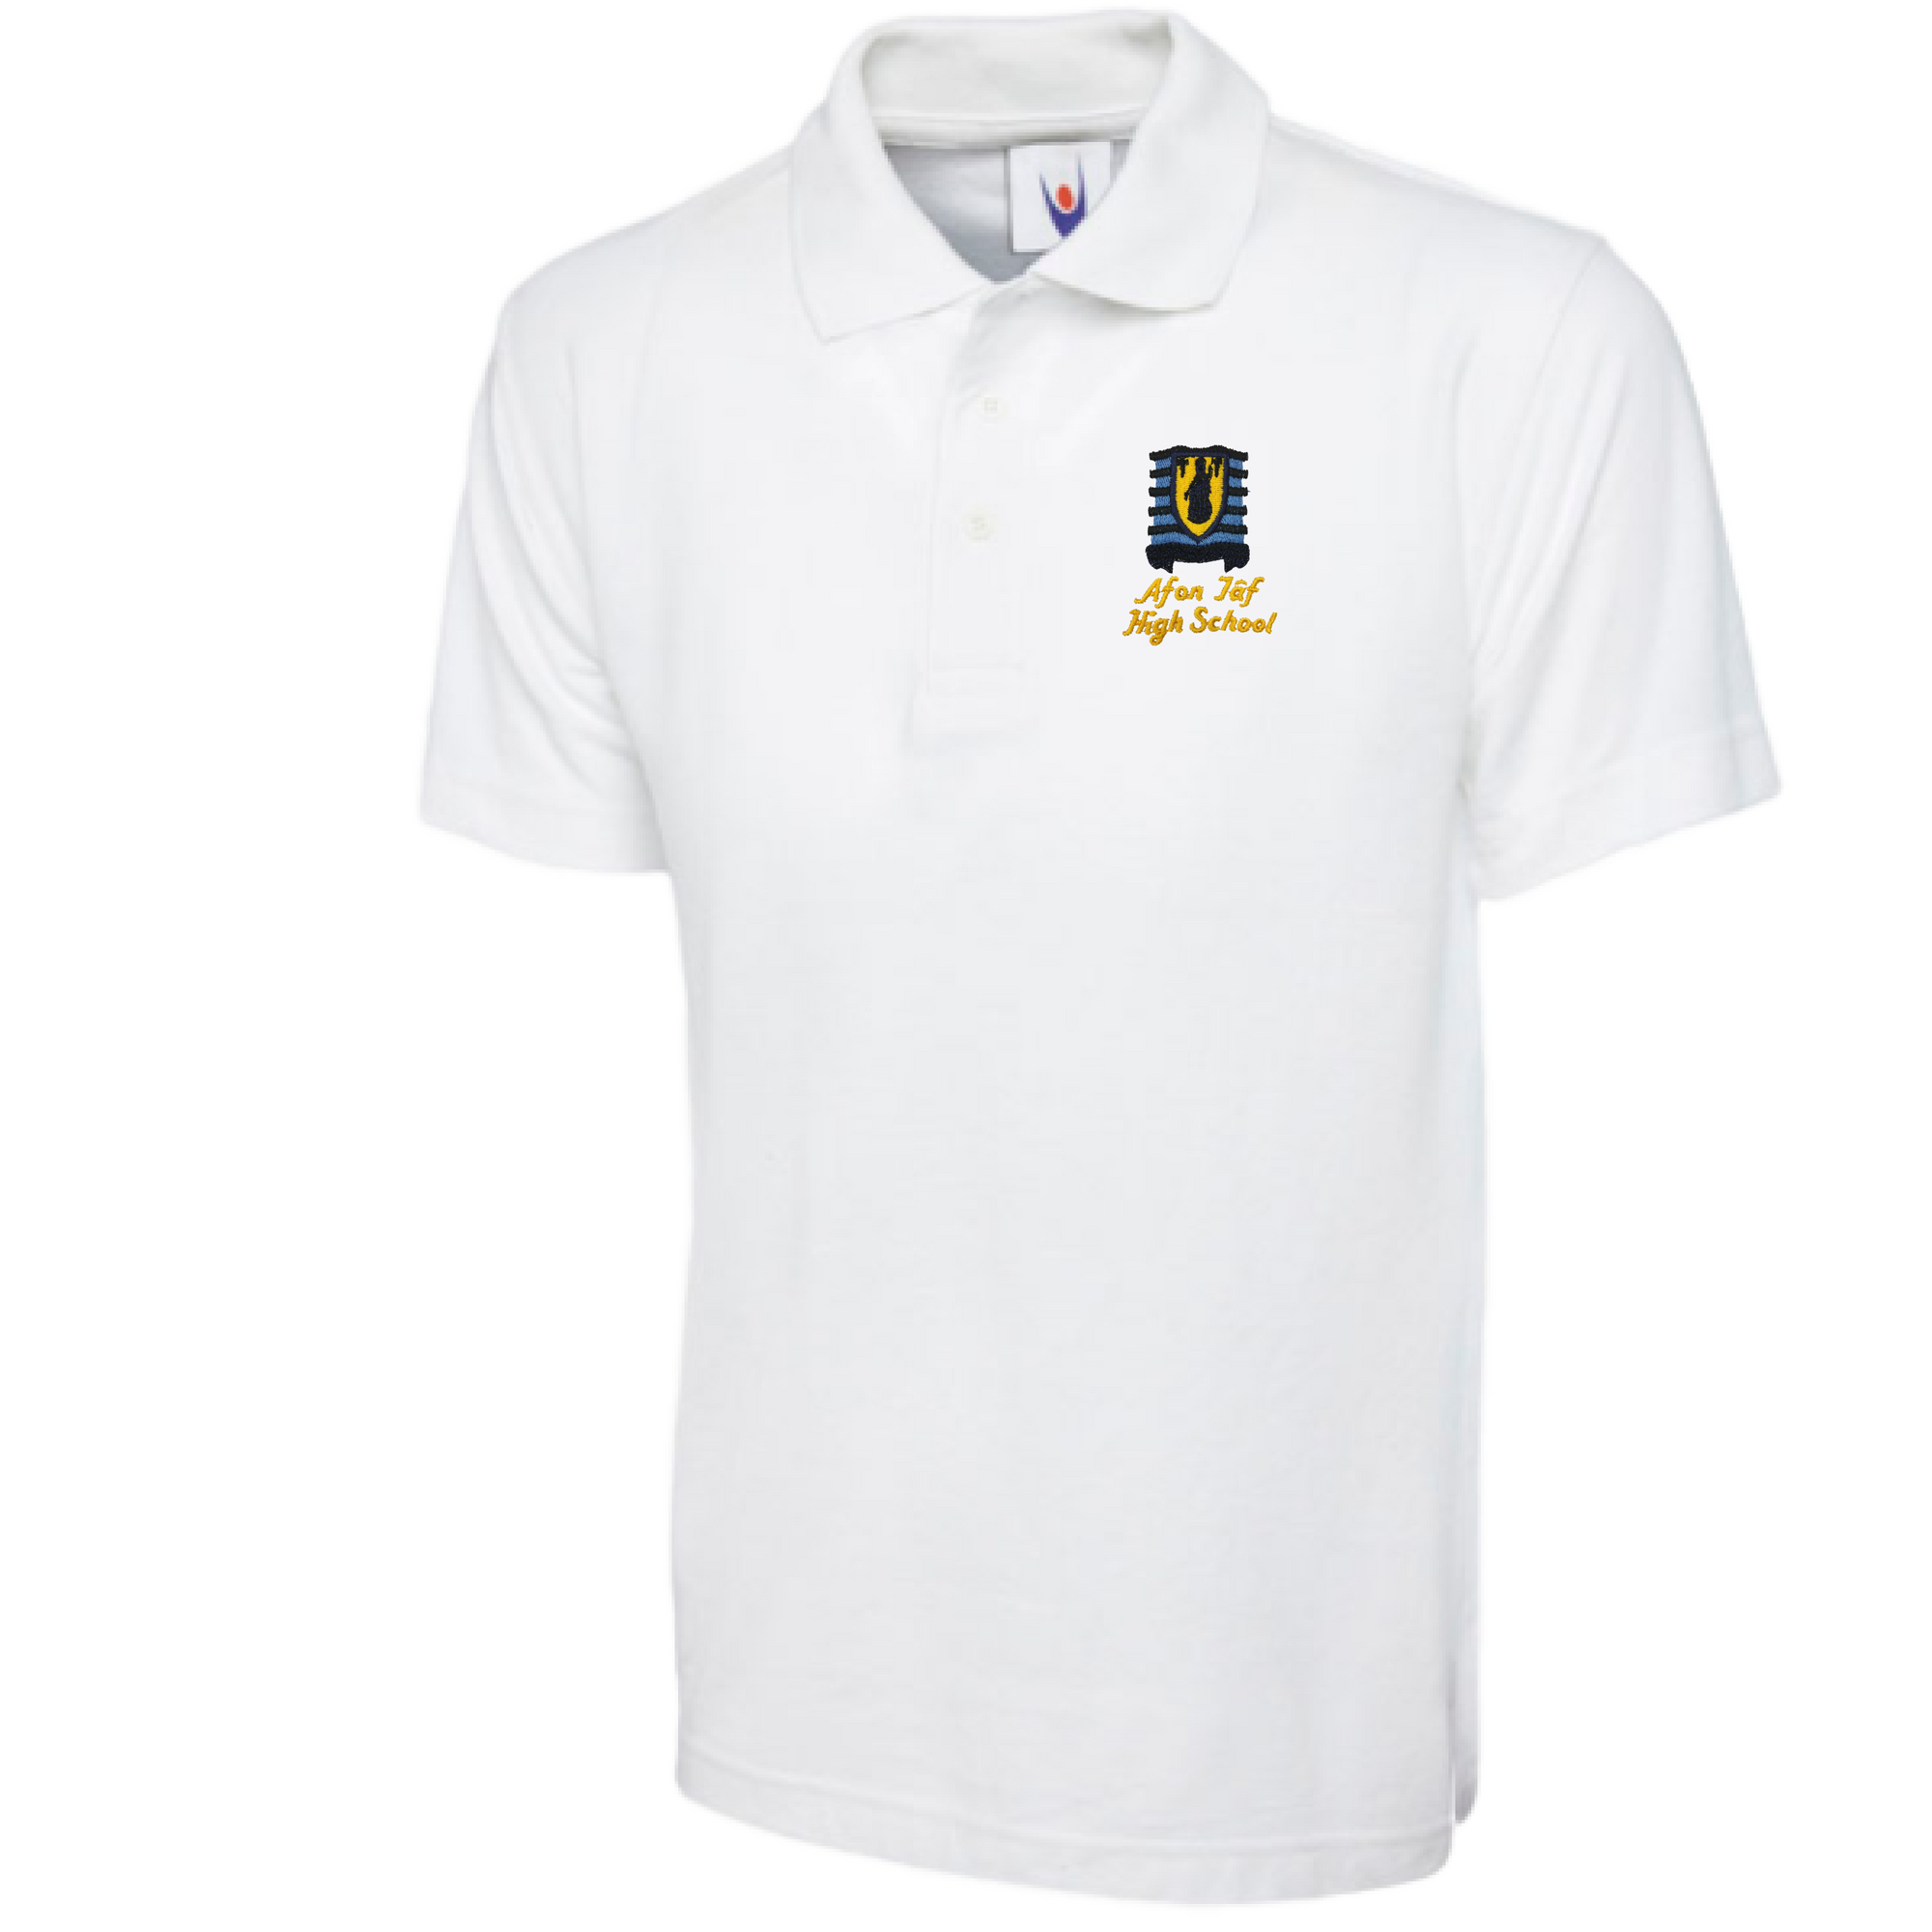 Afon Tâf High School White Polo Shirt